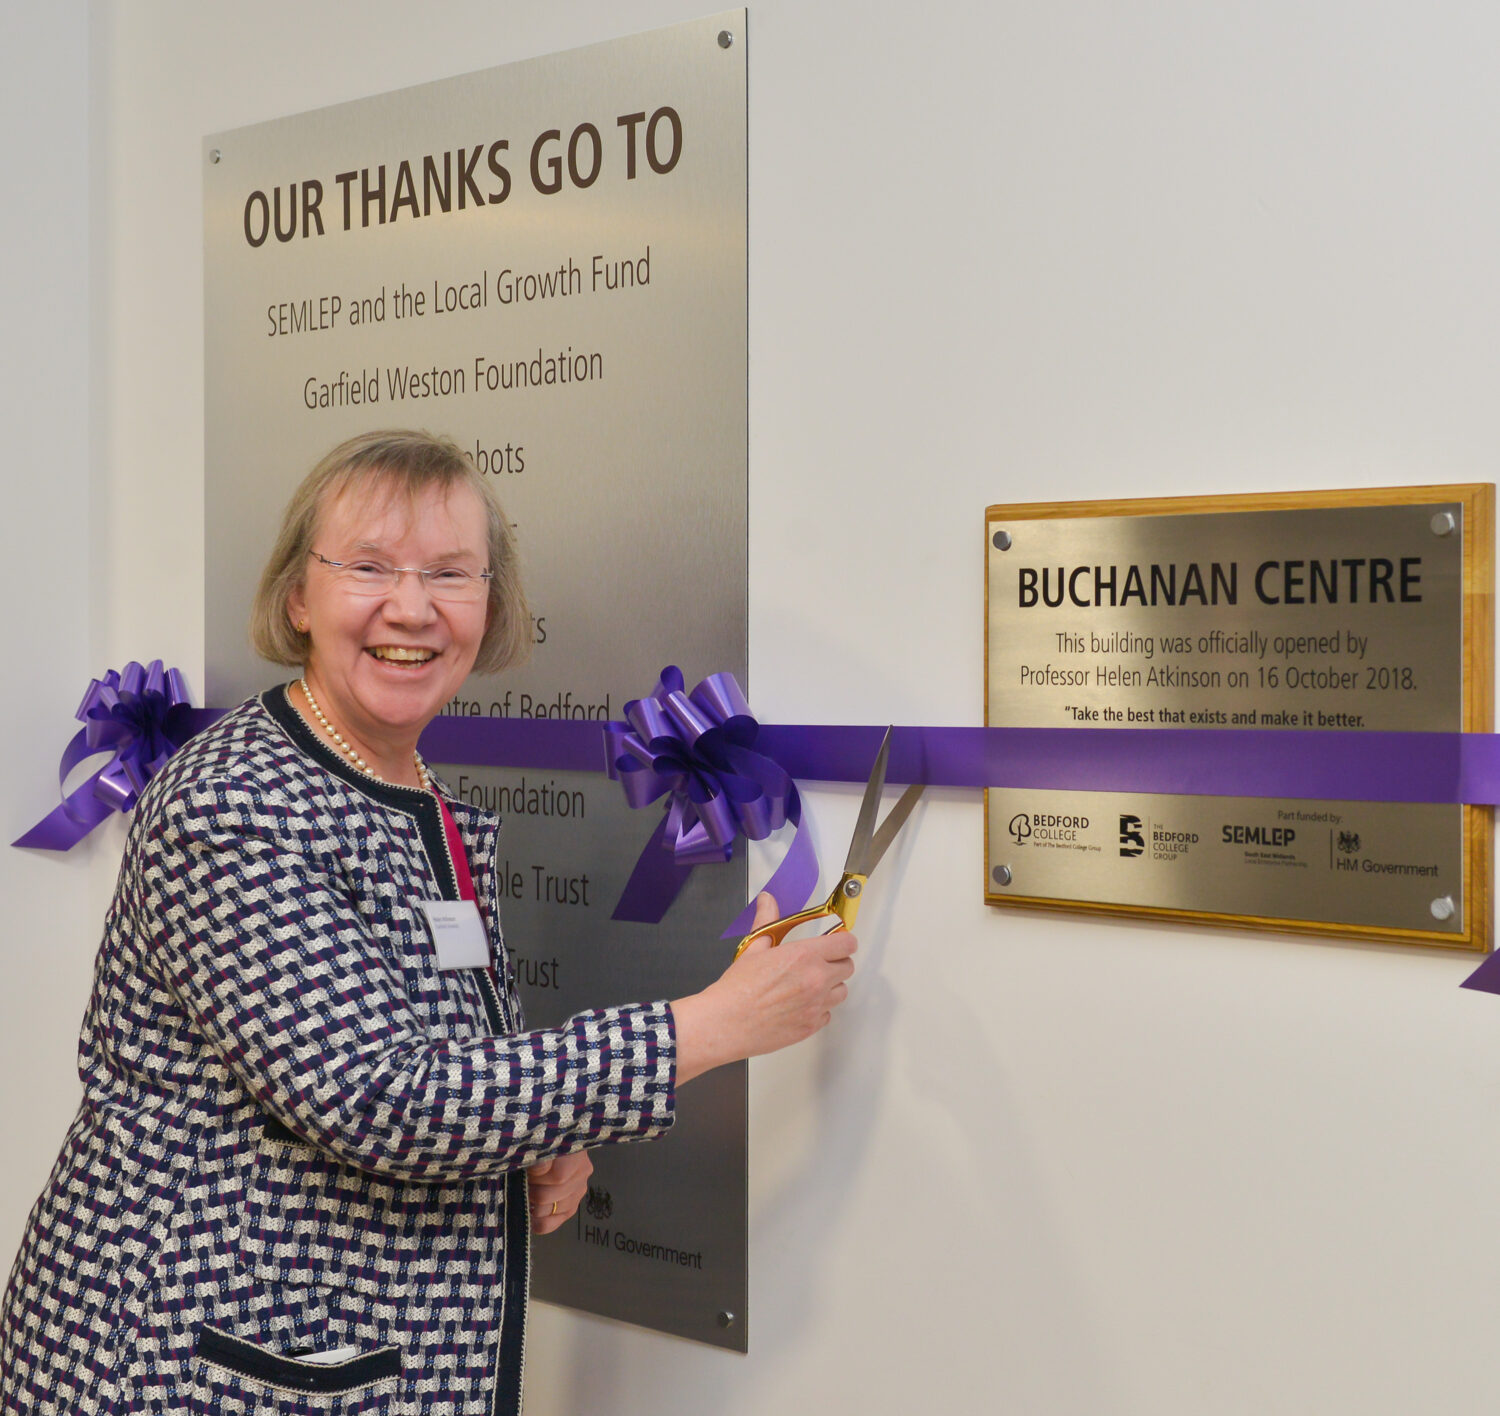 Official opening of Buchanan Centre 2018